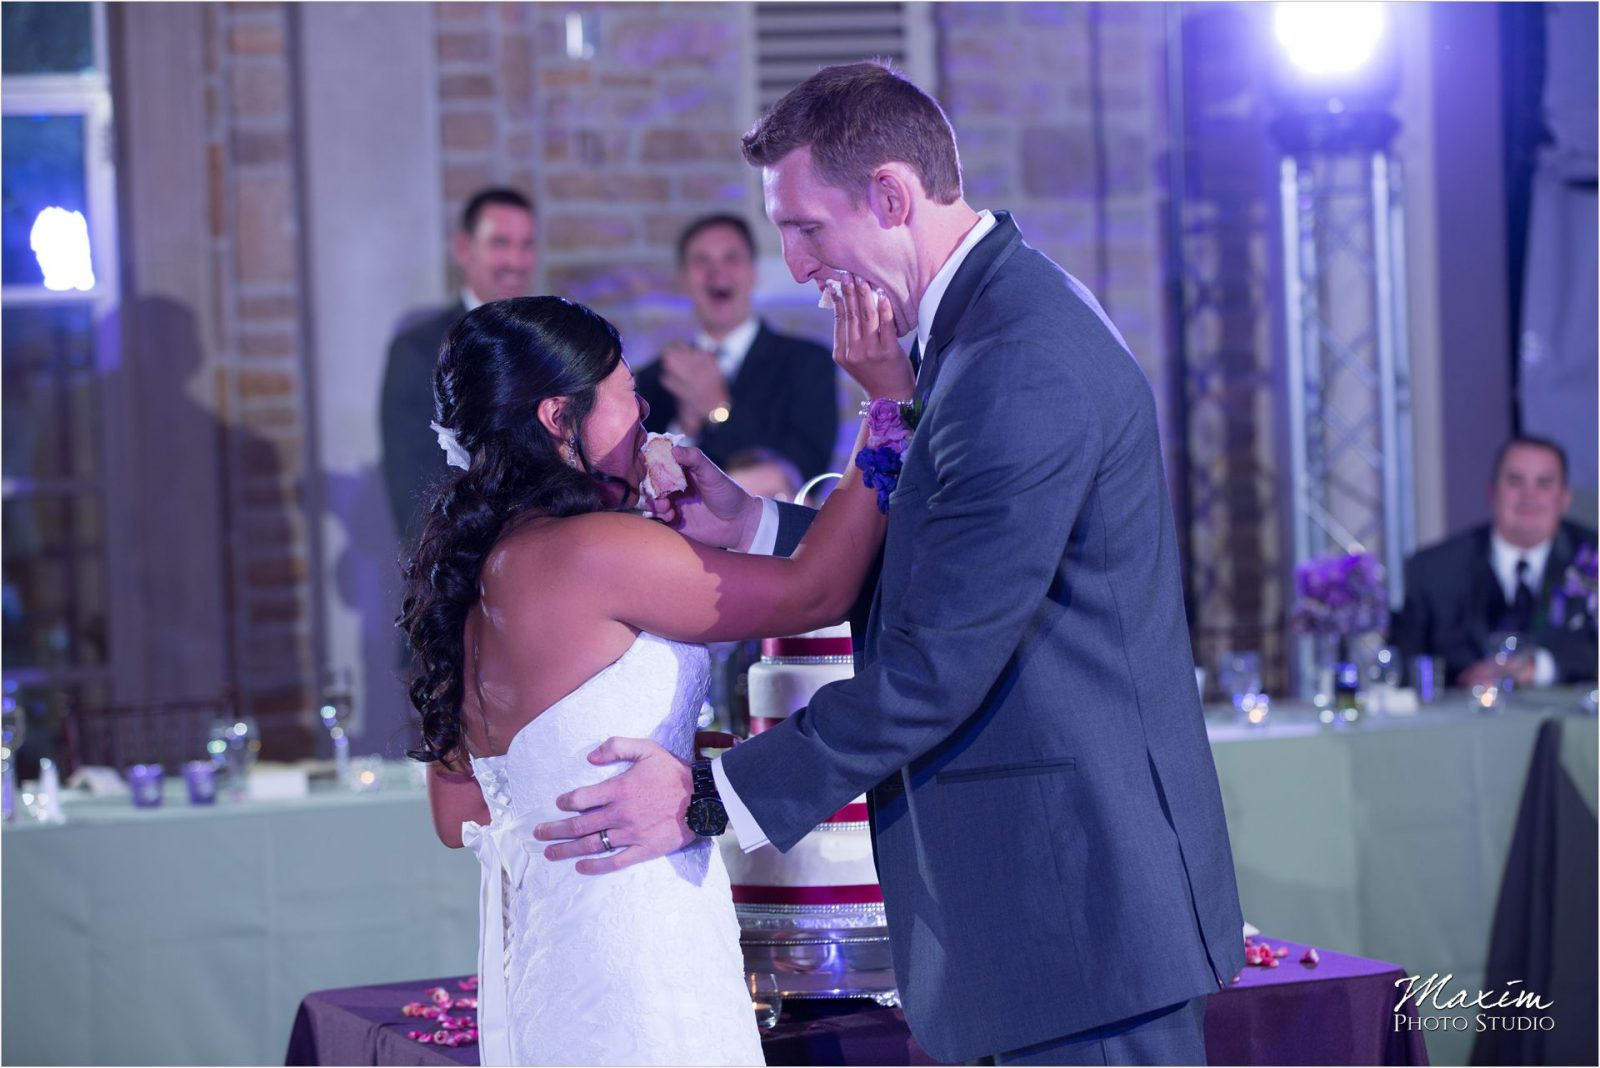 Ault Park Cincinnati Wedding Reception Groom Bride first dance